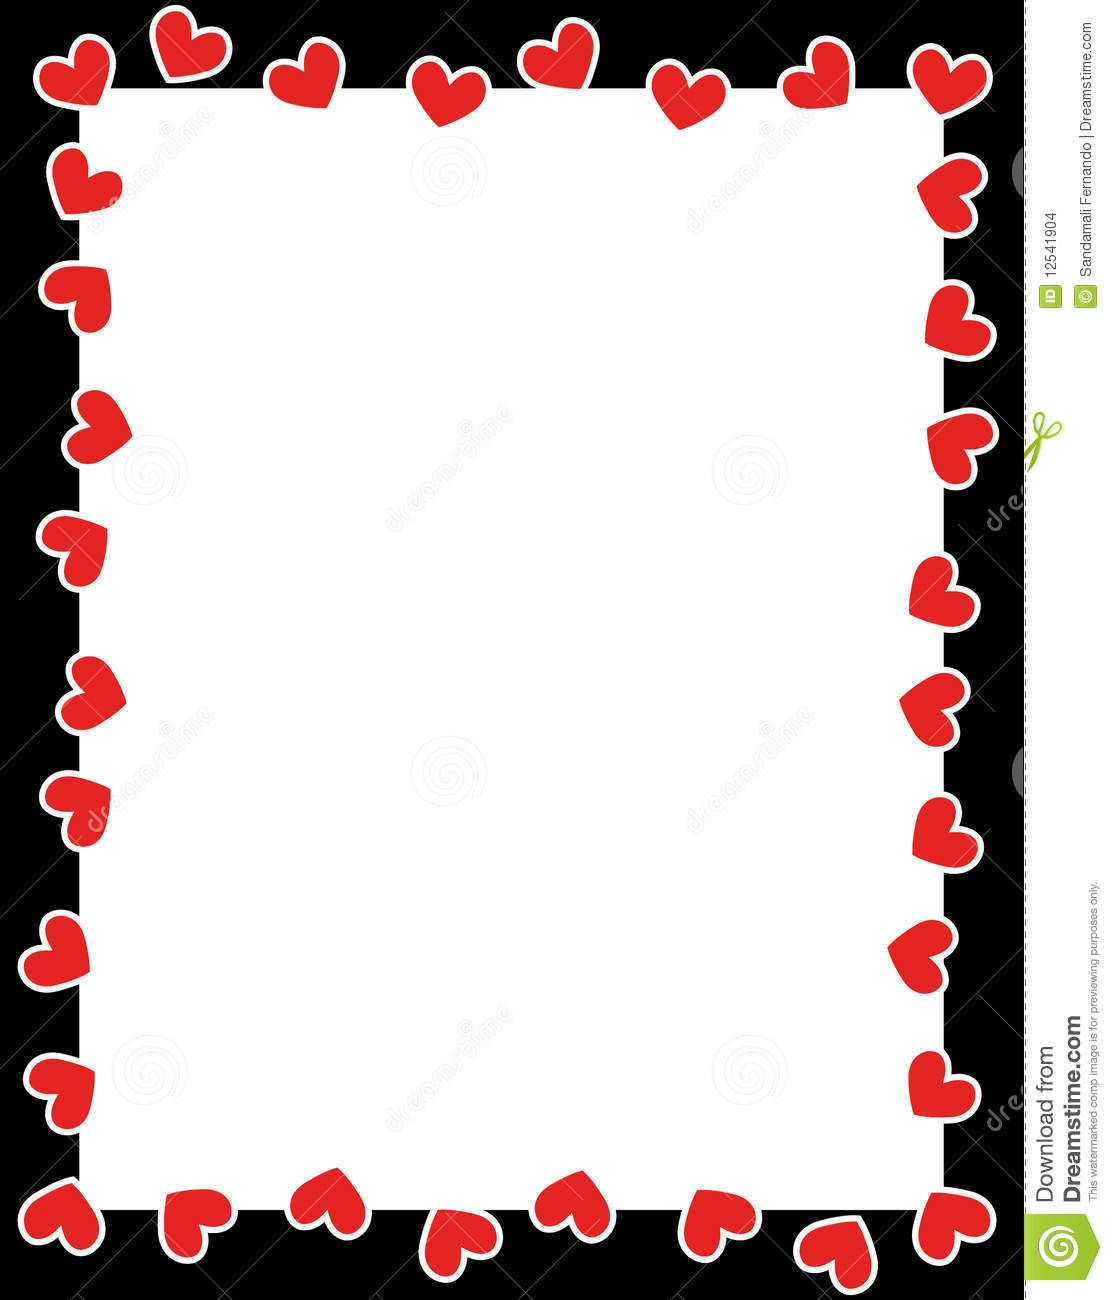 Cards clipart border. Valentines day clip art